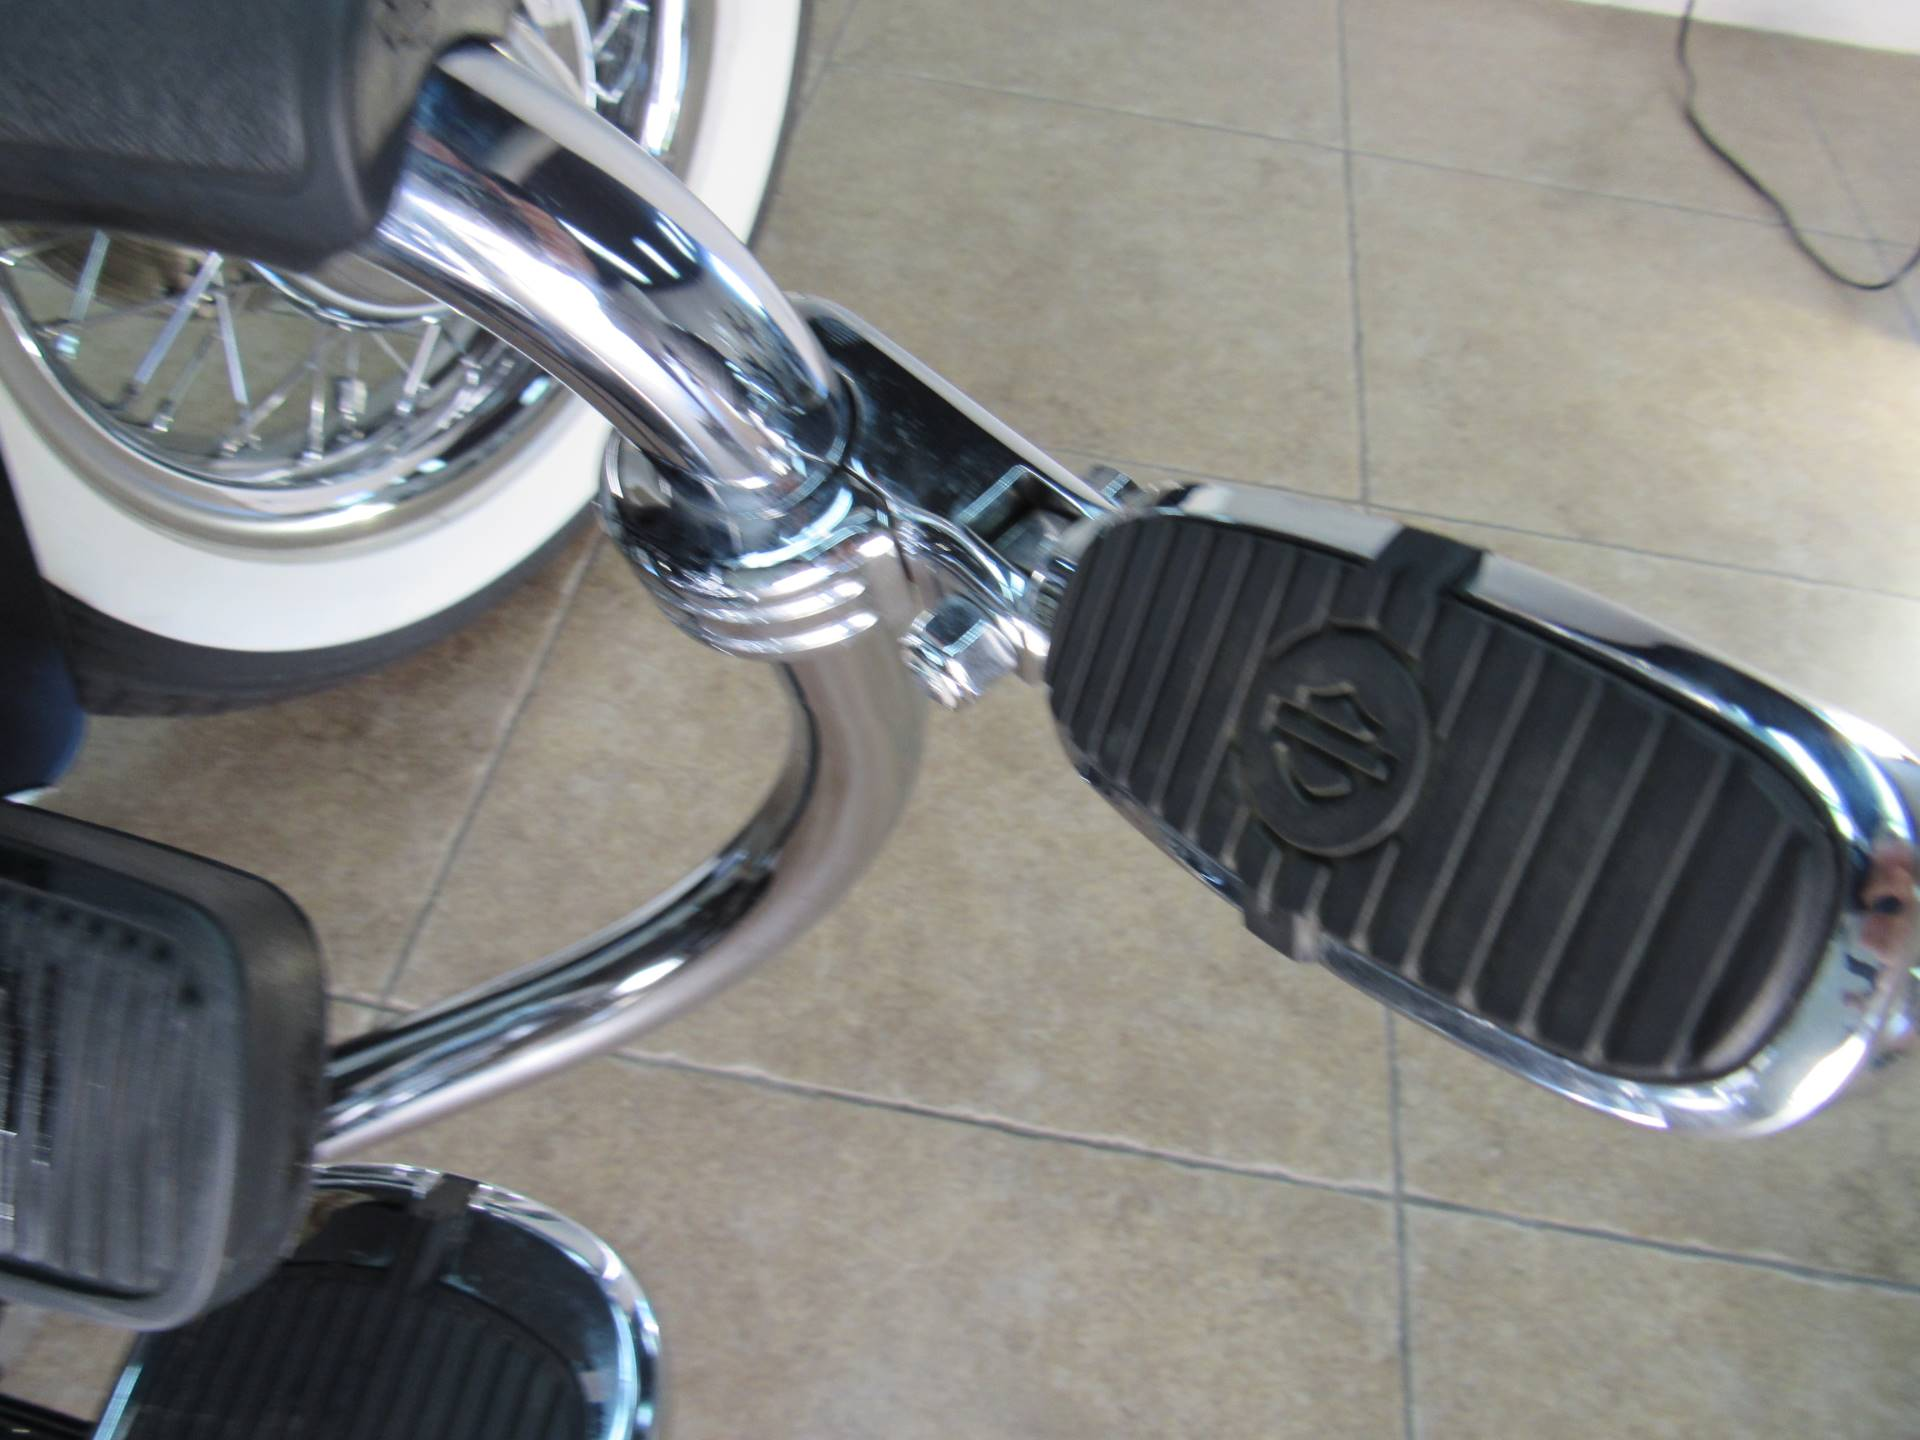 2012 Harley-Davidson Softail® Deluxe in Temecula, California - Photo 8